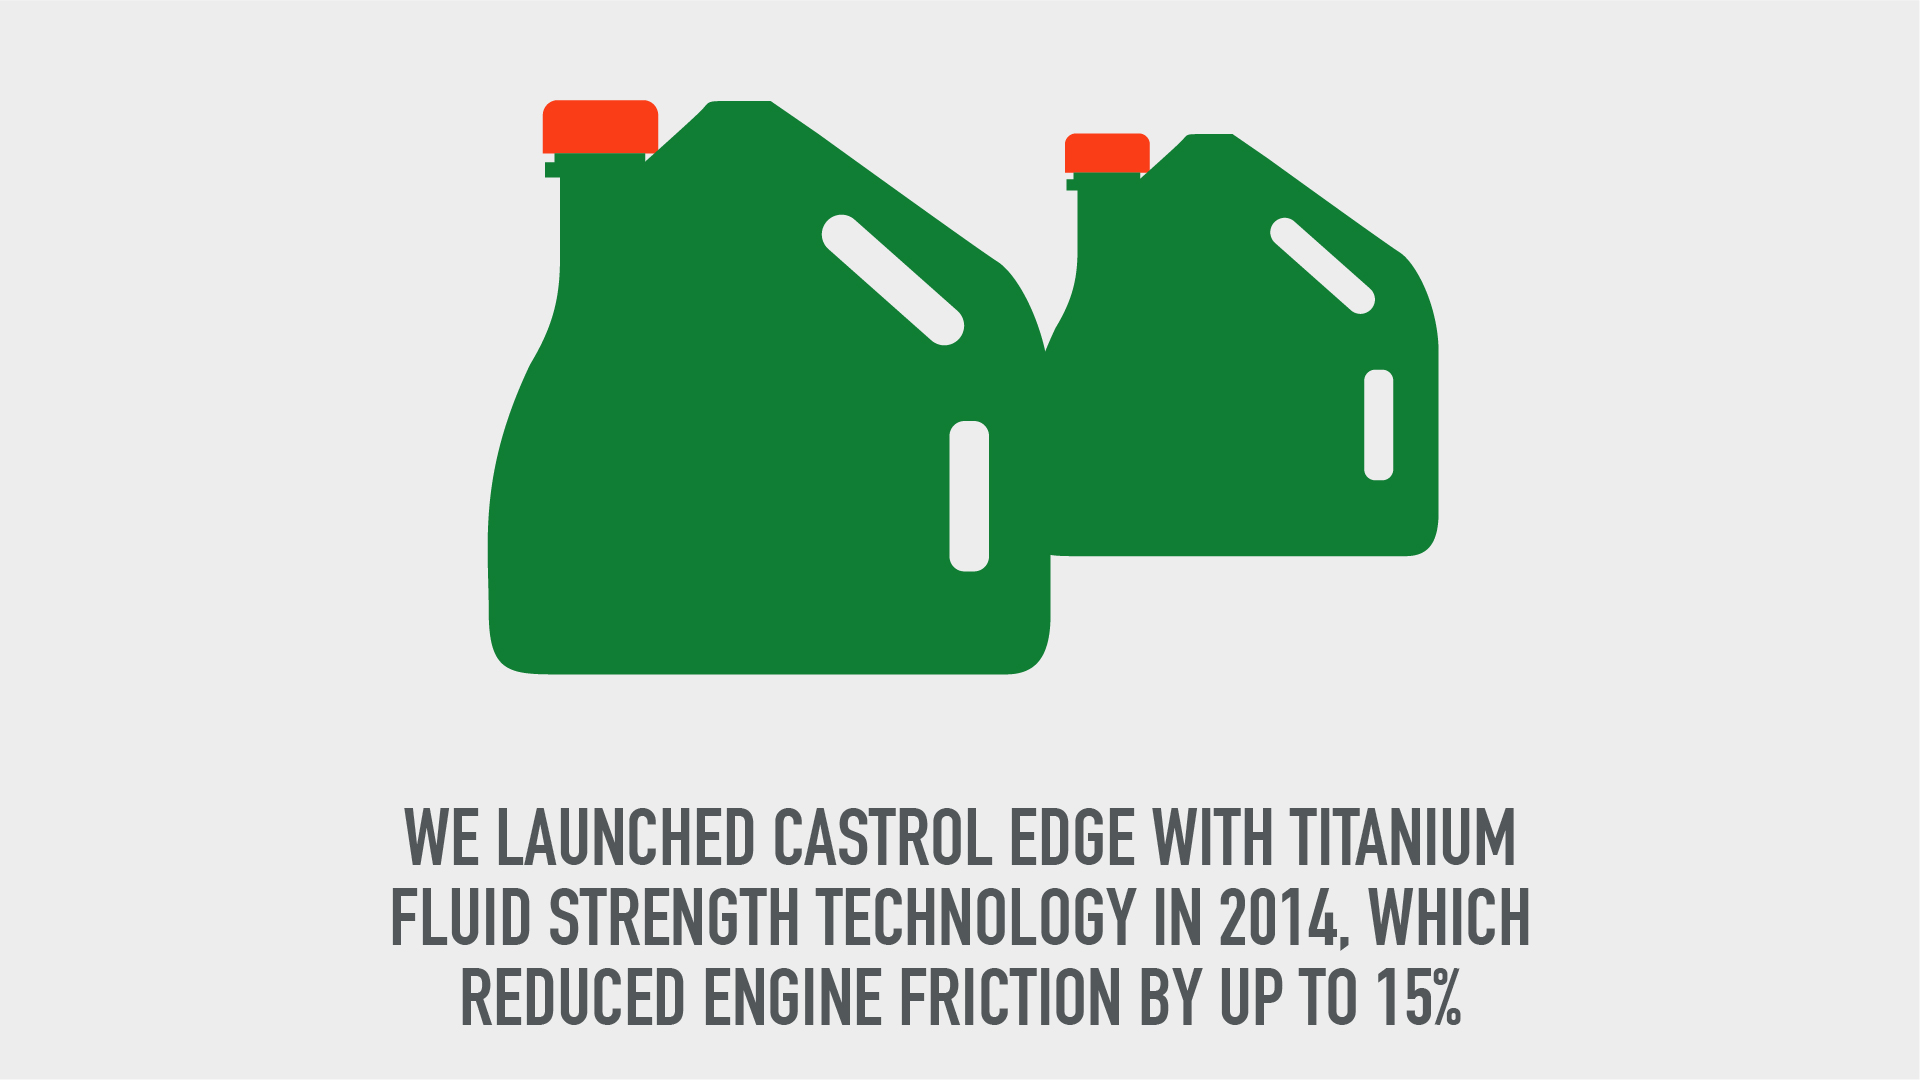 We launched Castrol edge with titanium fluid strength technology in 2014, which reduced engine friction by up to 15%.jpg